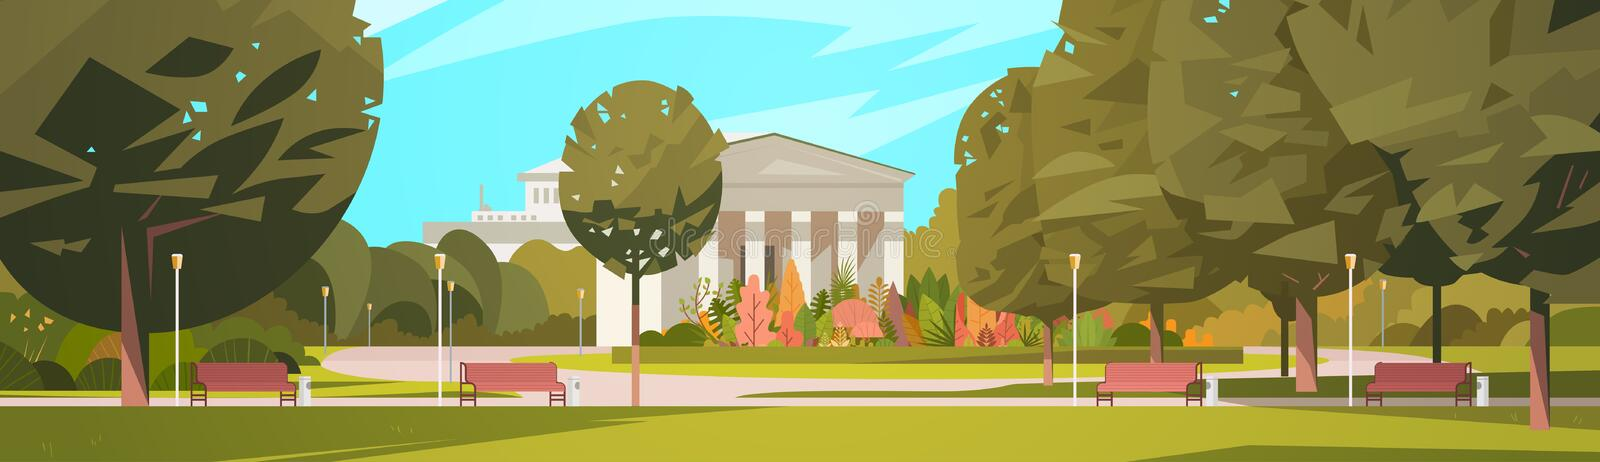 Summer City Park With Town Building Background Green Trees And Wooden Bench royalty free illustration